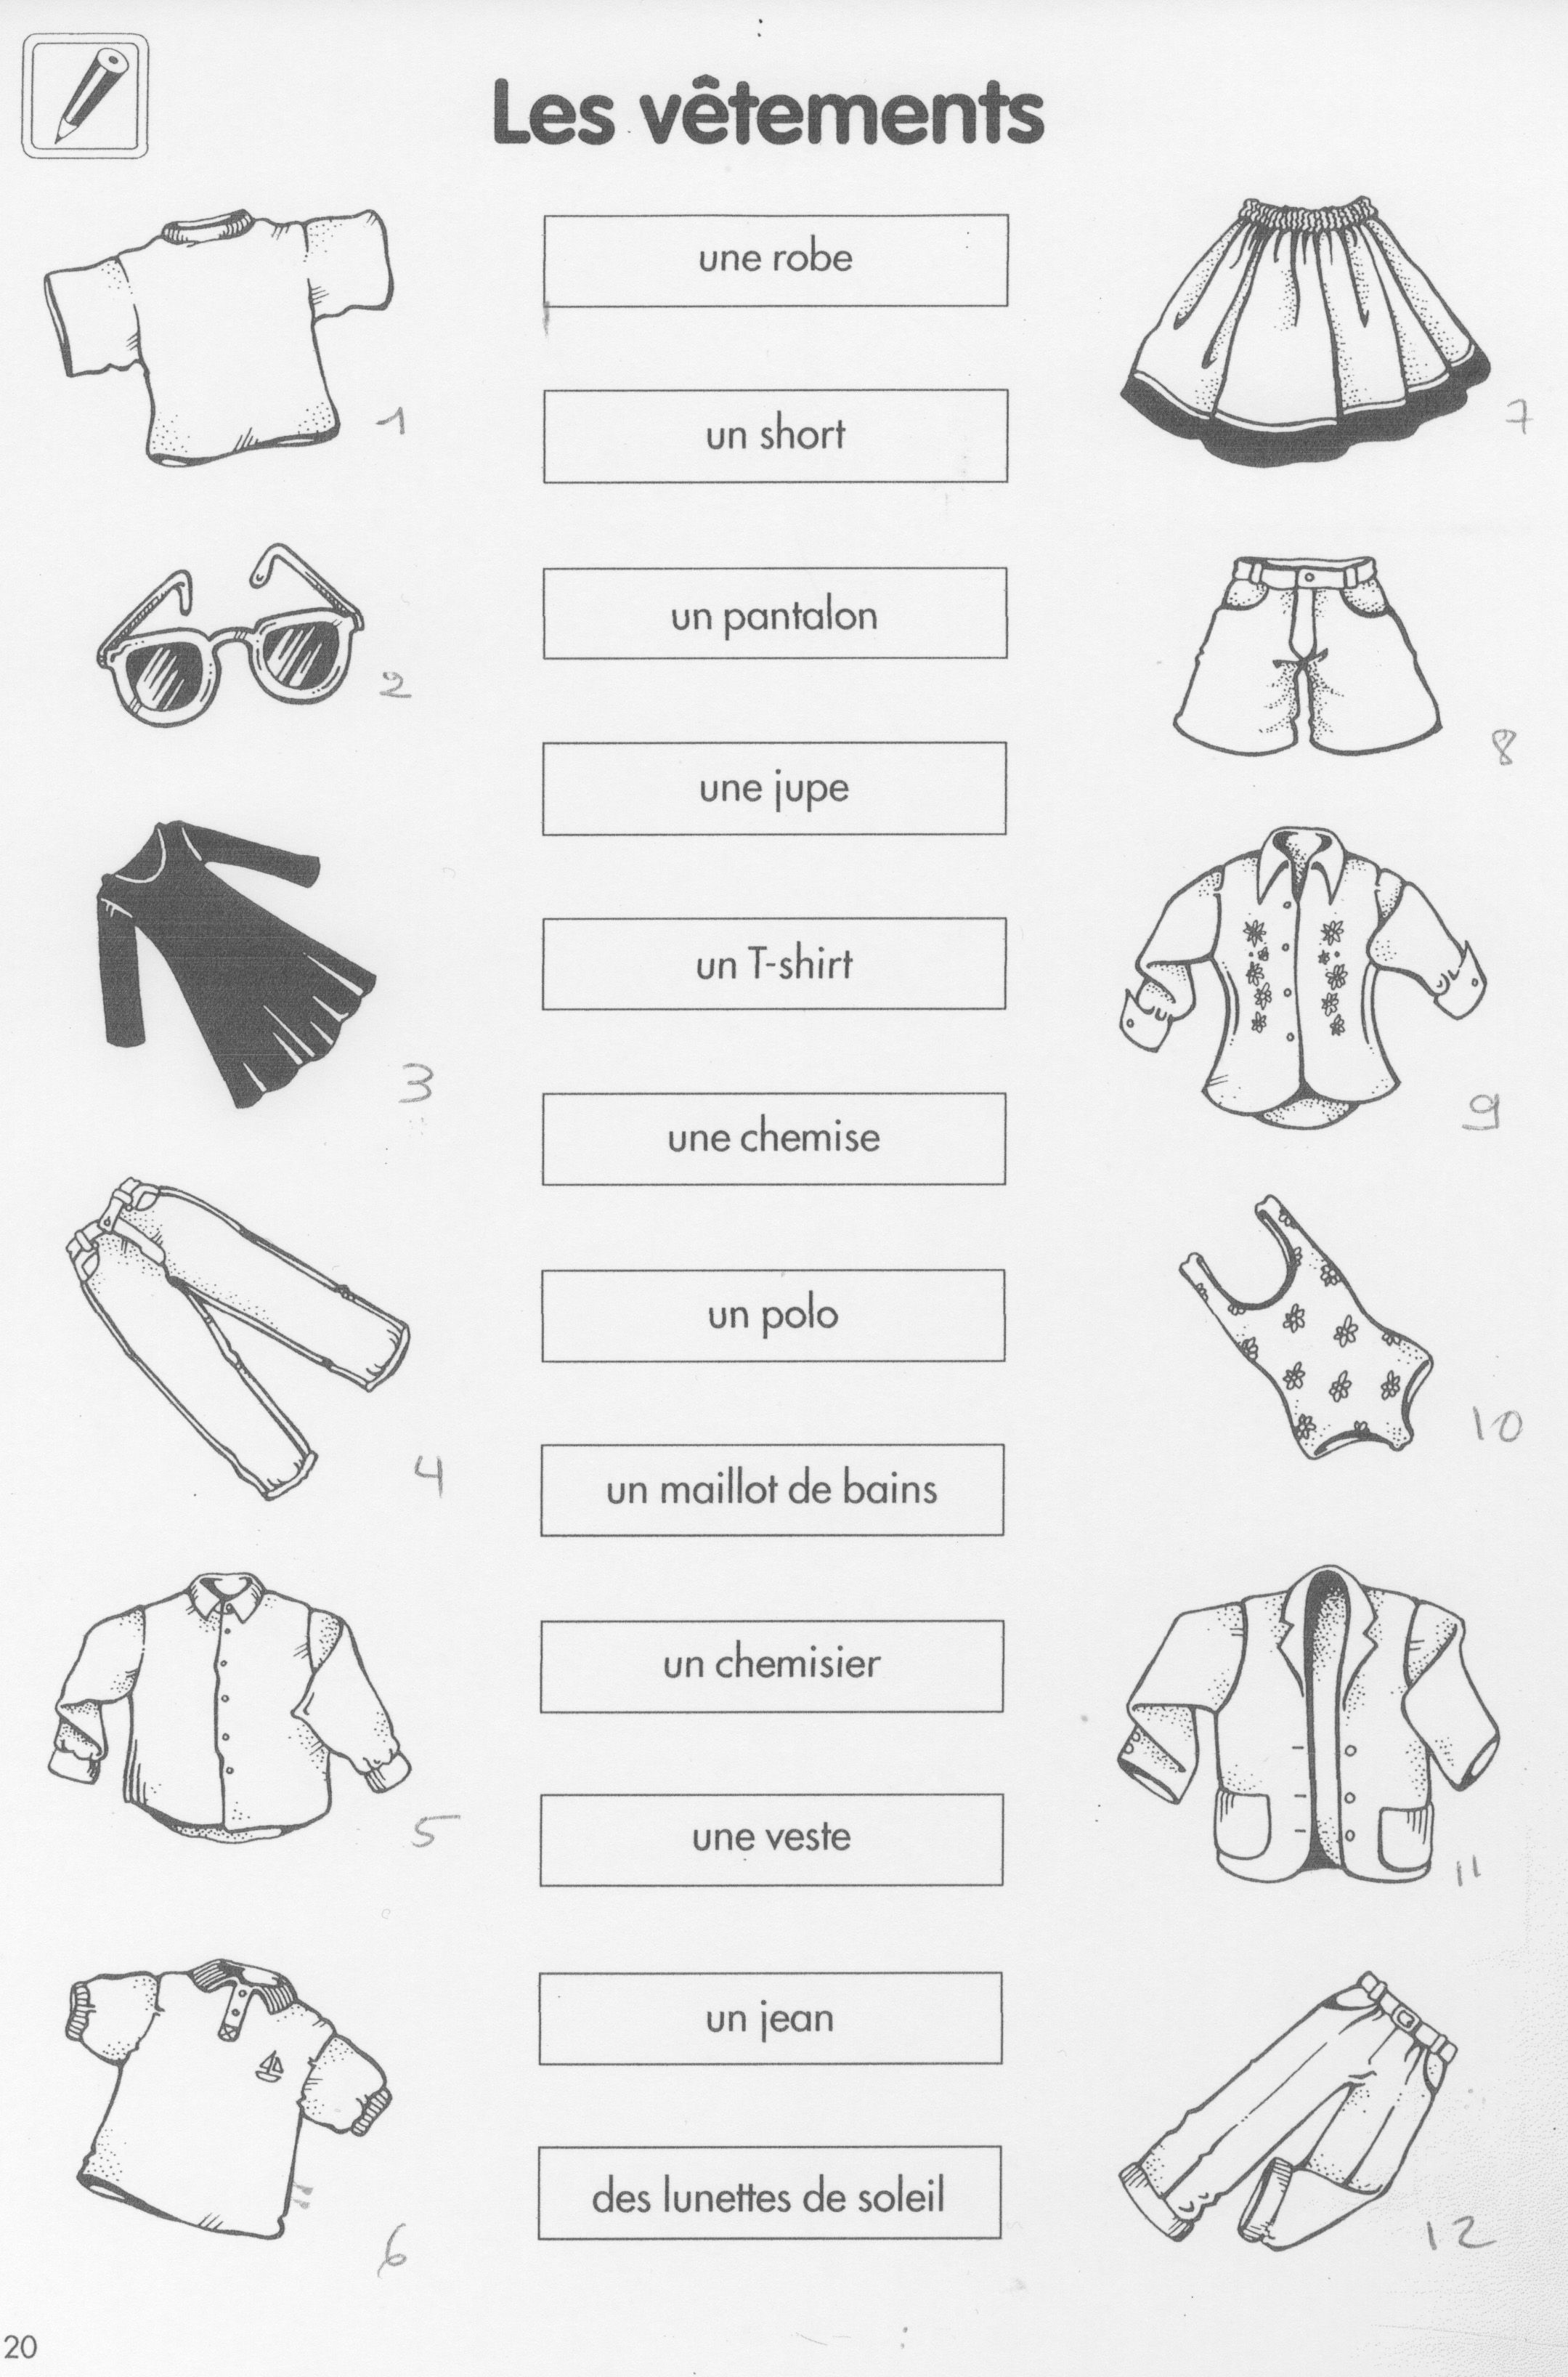 Les v tements exercice fichas franc s pinterest for En y frances ejercicios